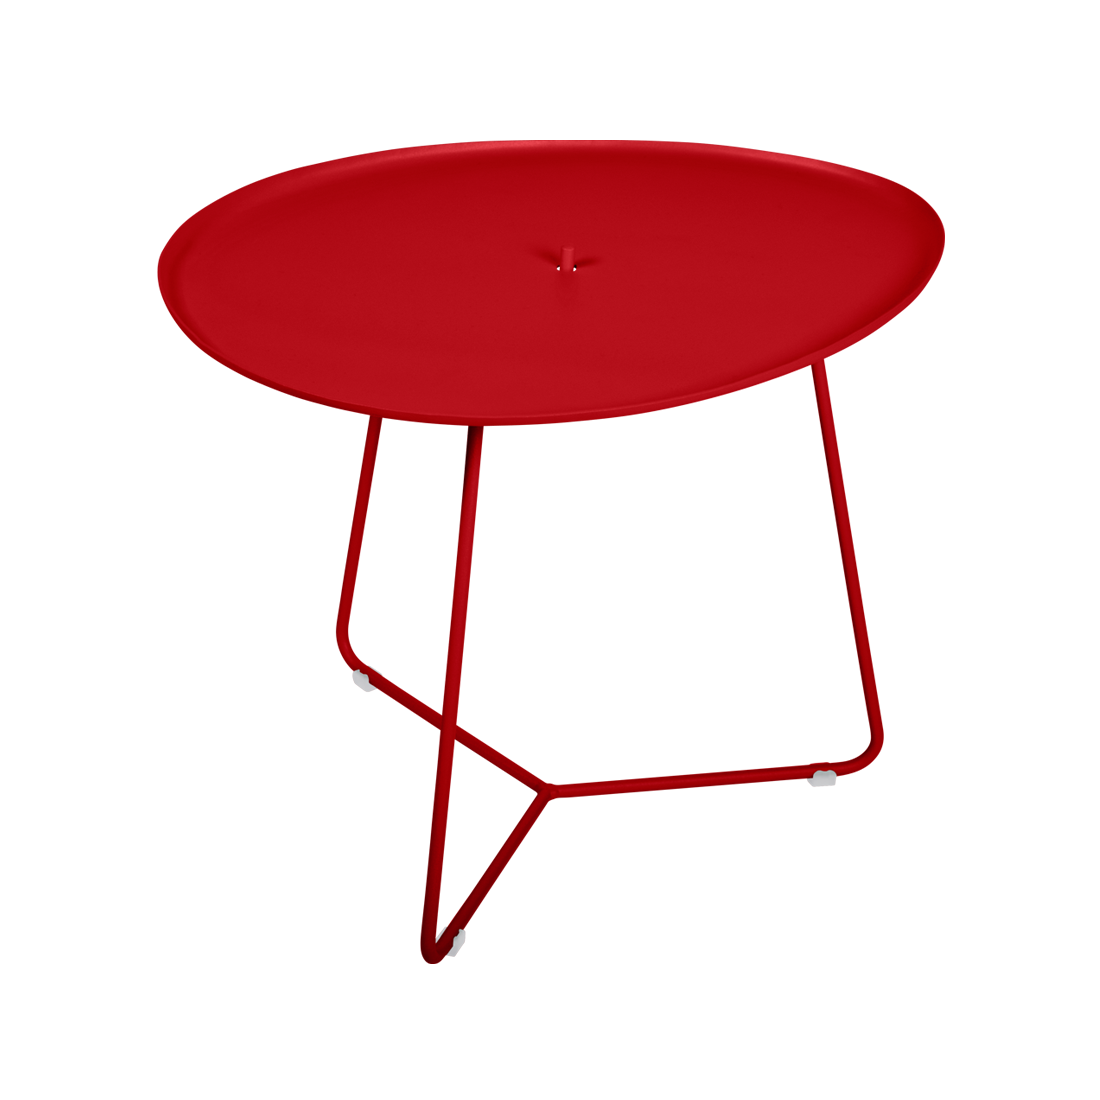 table basse metal, table basse fermob, table basse de jardin, table basse rouge